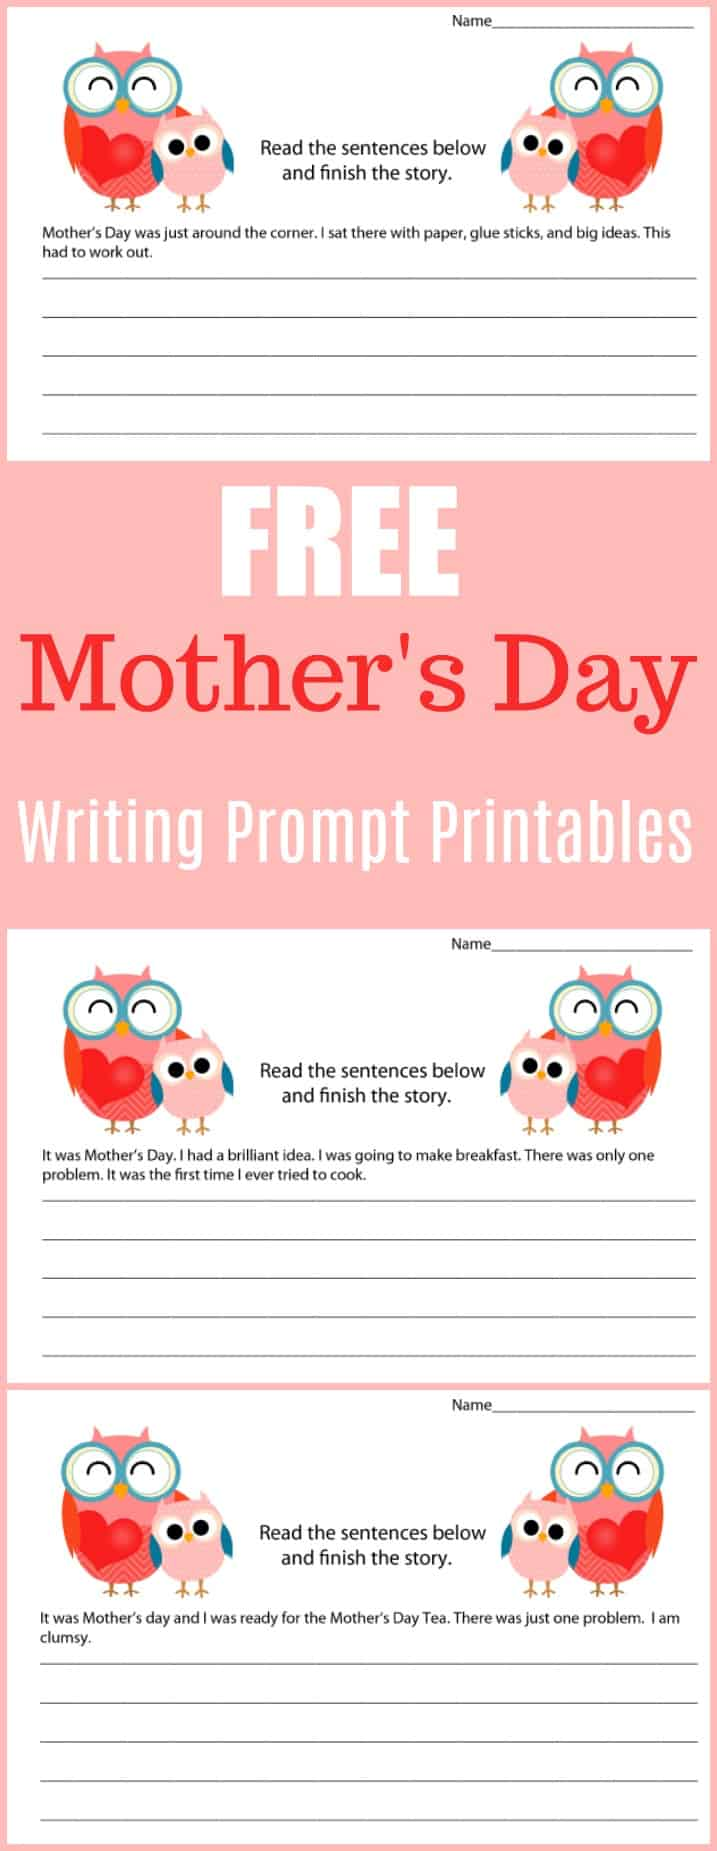 Free Mother's Day Writing Prompt Printables -  #writing #writingprompt #holiday #printable #freeprintable #education #edchat #homeschool #homeschooling  #mothersday